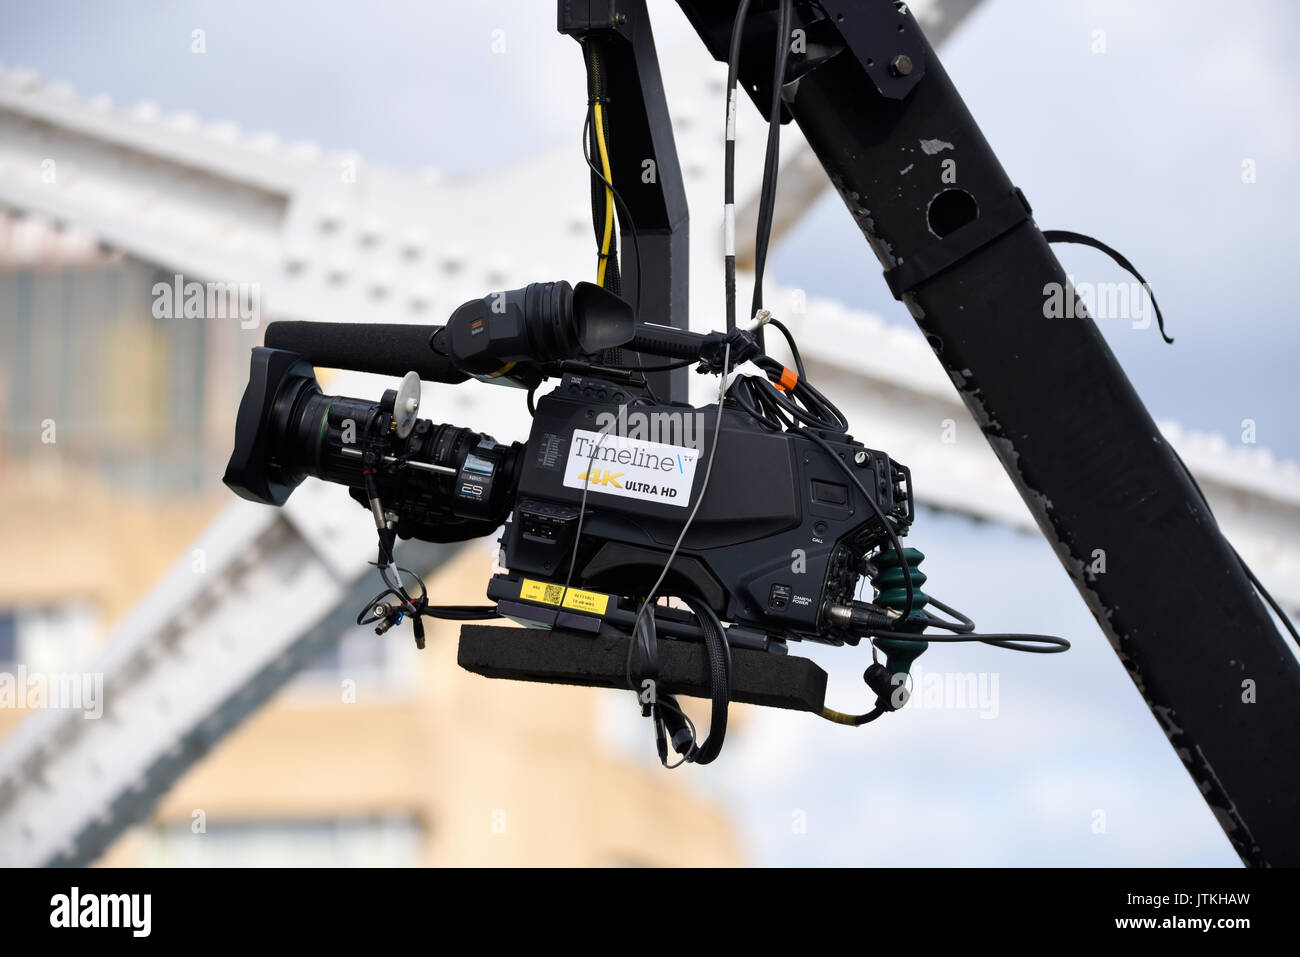 TV camera for BBC coverage of the World Athletics Championships Marathon at the finish line on Tower Bridge, London. Timeline TV. Canon.Space for copy - Stock Image